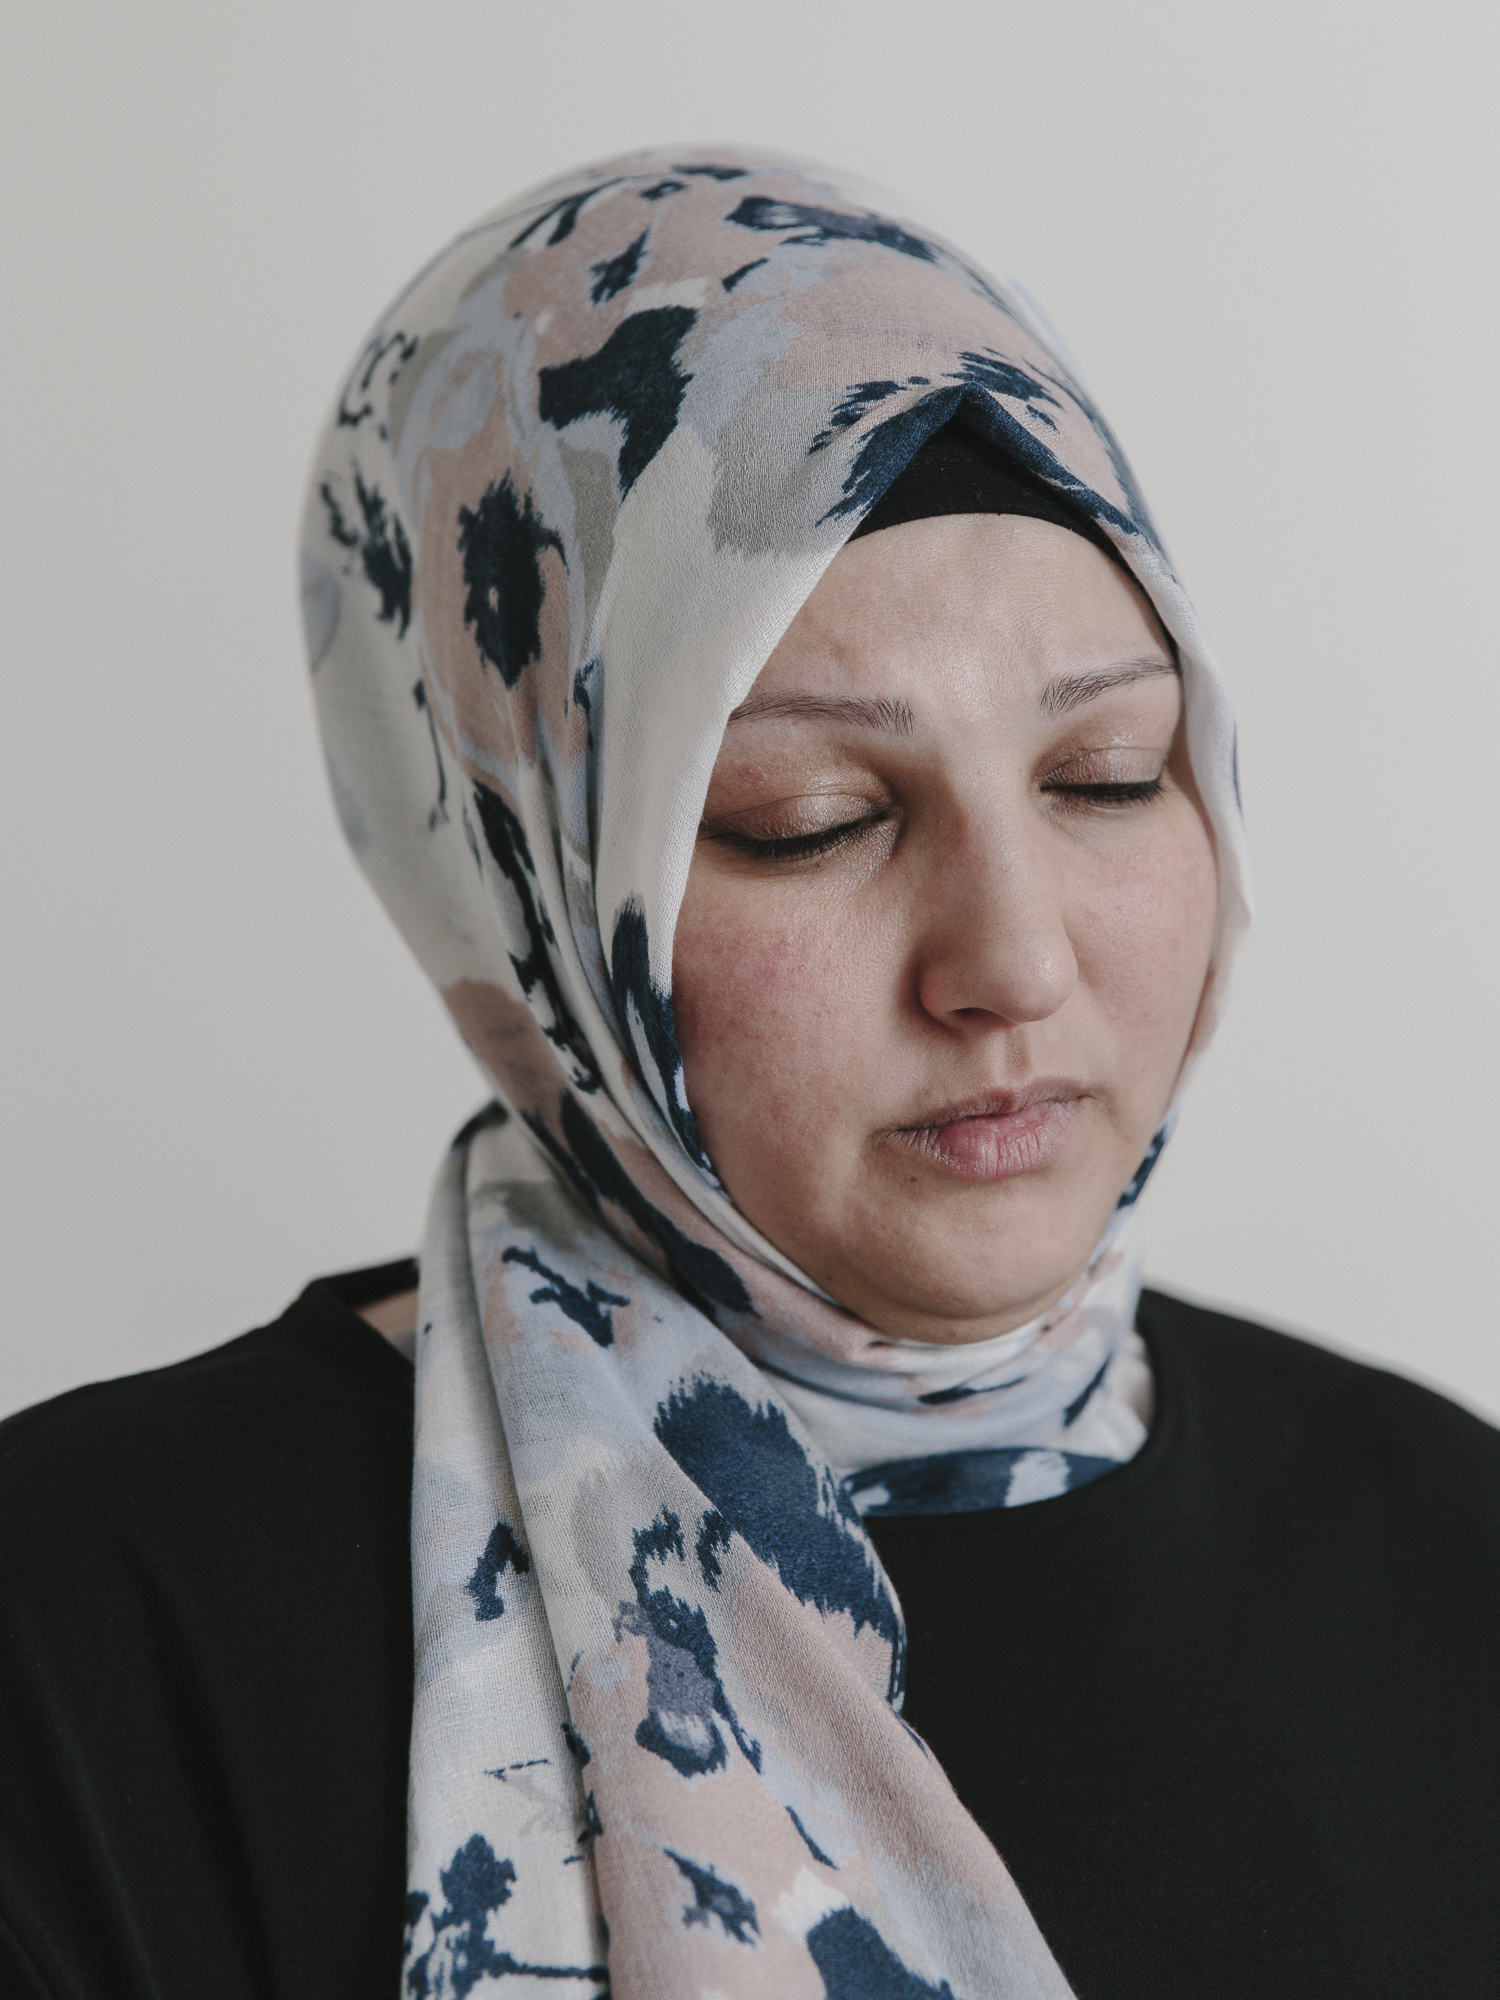 """Neriman Yaman, 37, asked in an interview after attending a court hearing for her son, """"What is happening to our children?"""" (Felix von der Osten for The Washington Post)"""